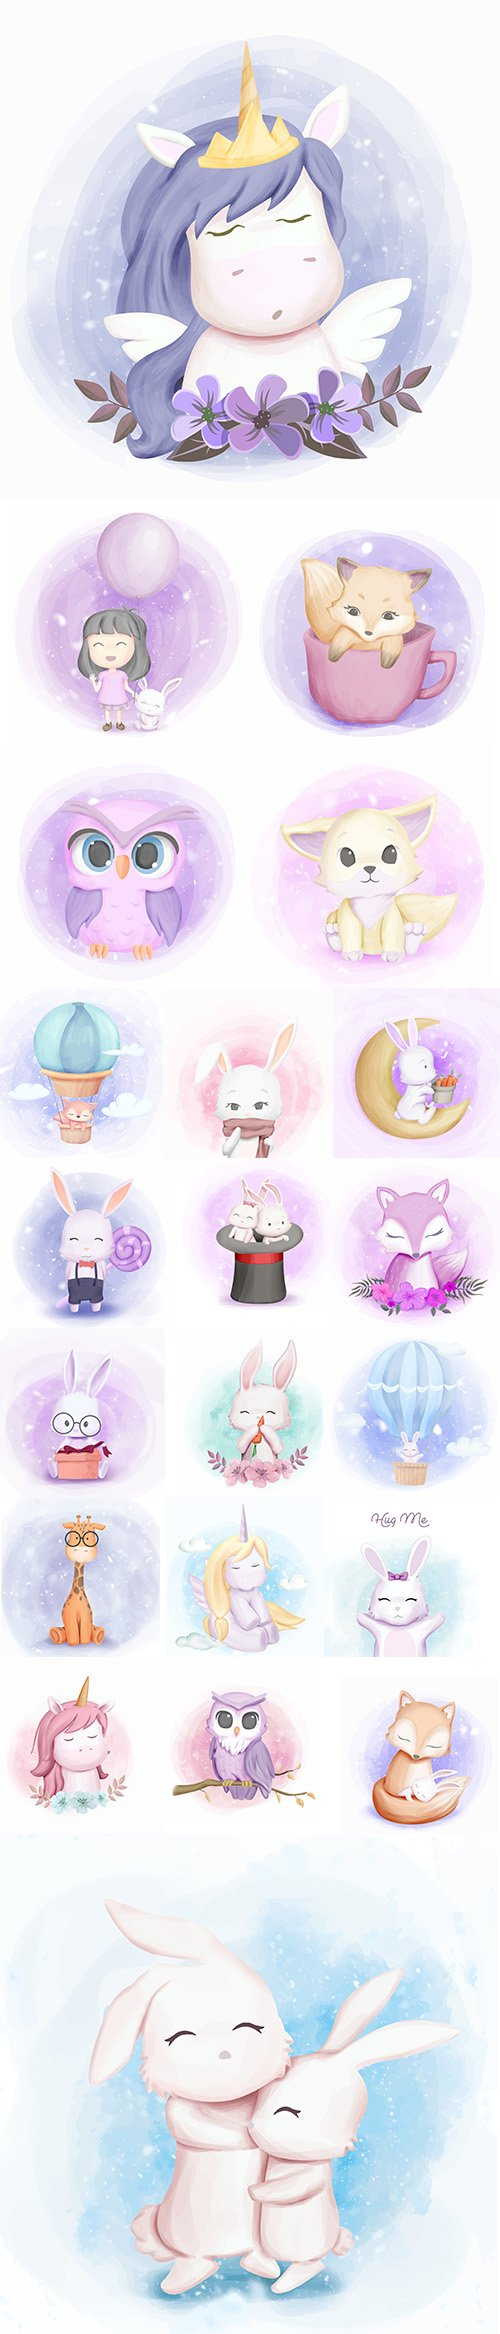 Hand Draw Lovely Cute Watercolor Animal Vector Pack 4